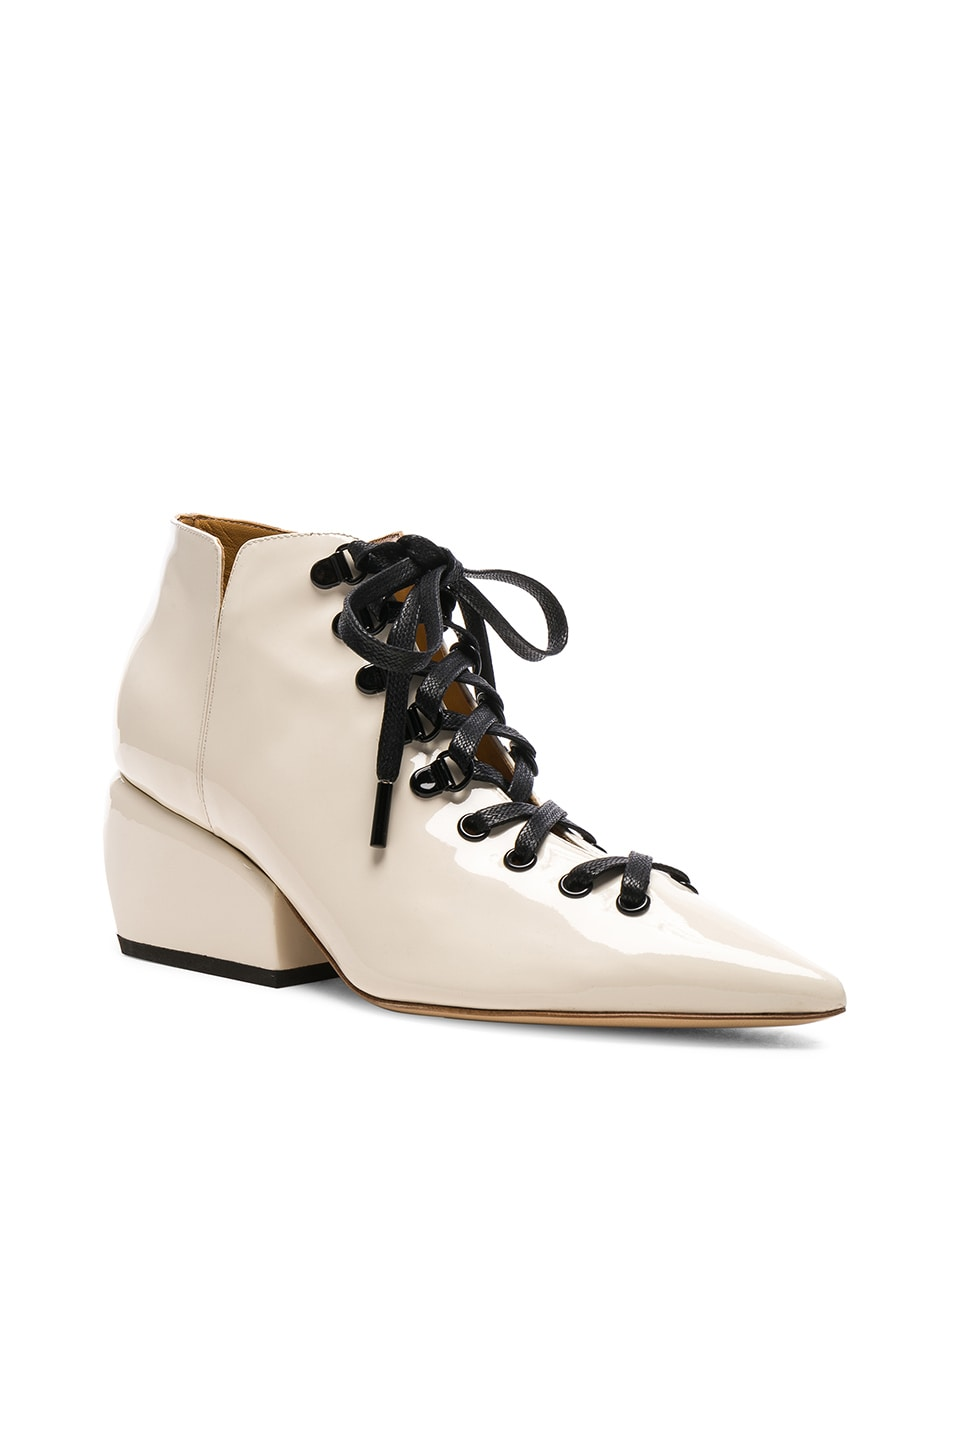 PETAR PETROV Patent Leather Sacha Boots in . hGEsiENT